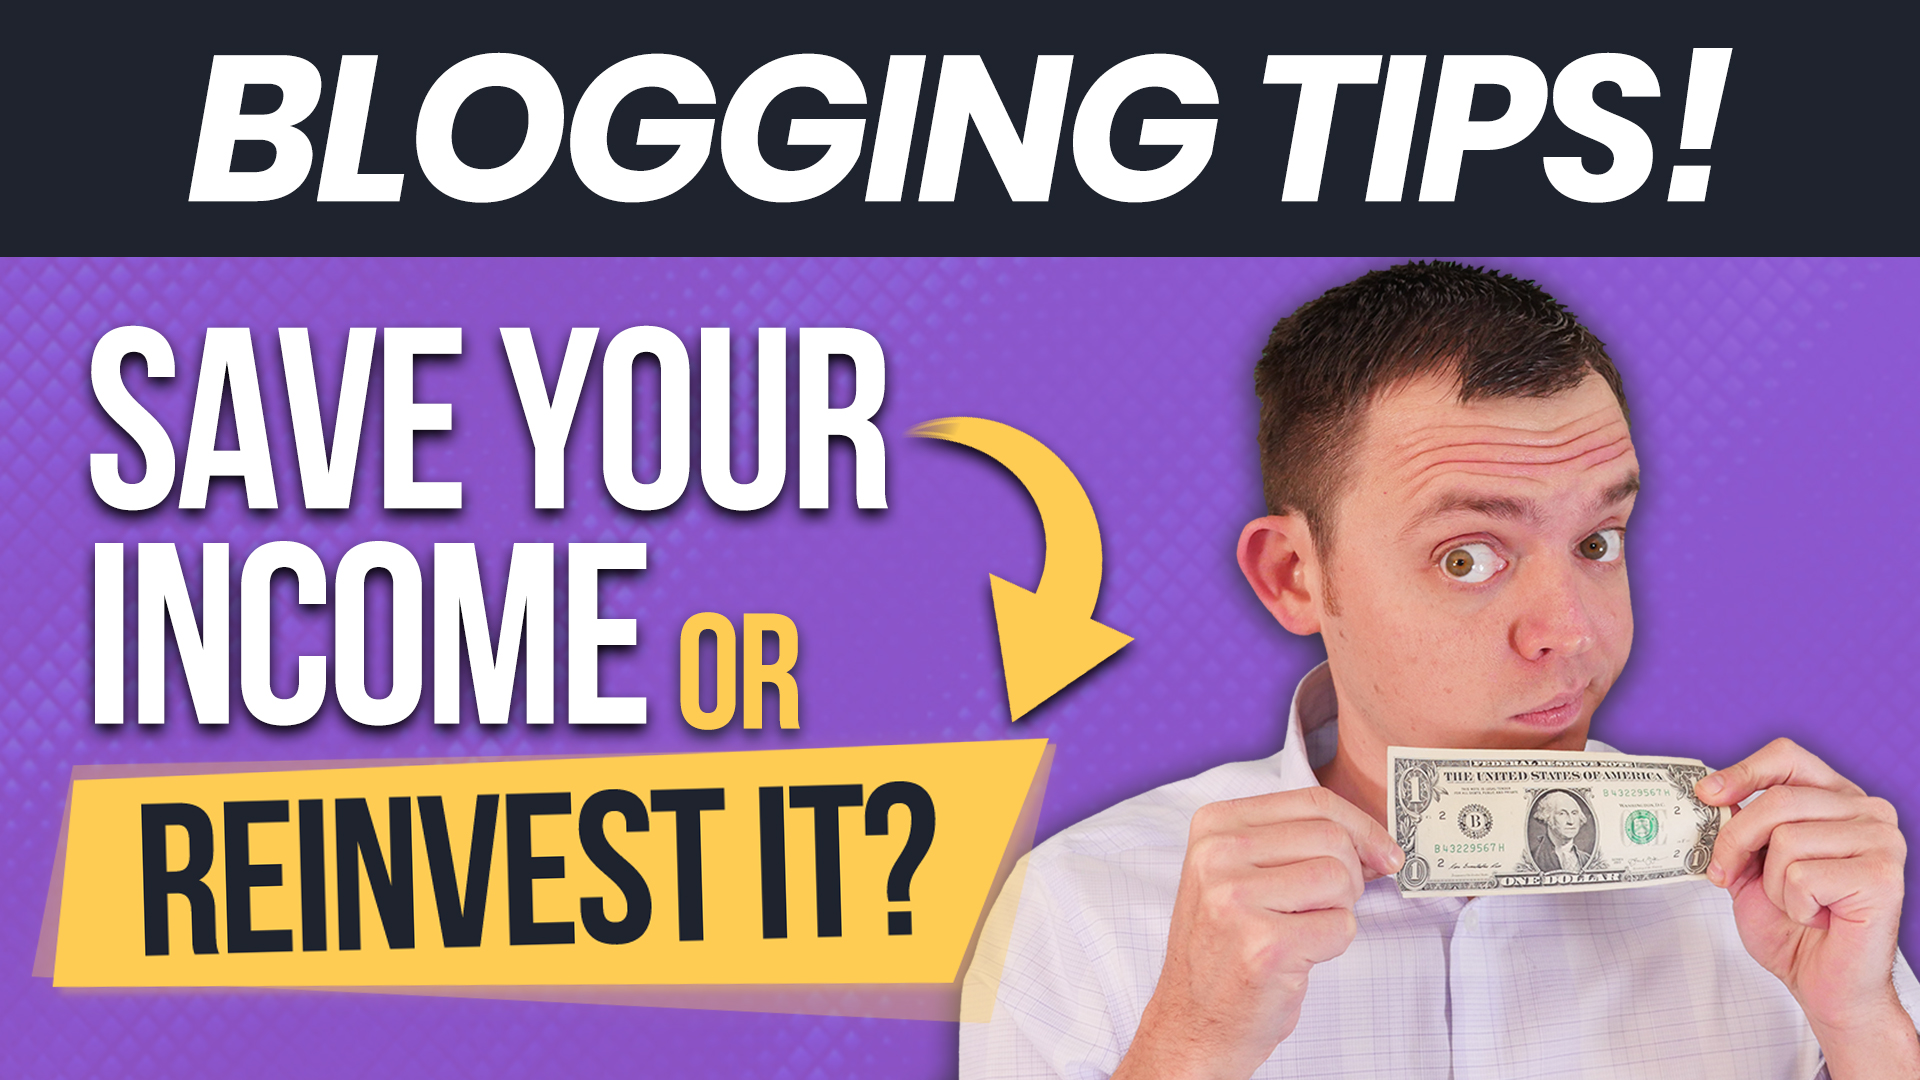 Save Your Blog Income or Reinvest the Profits for Growth